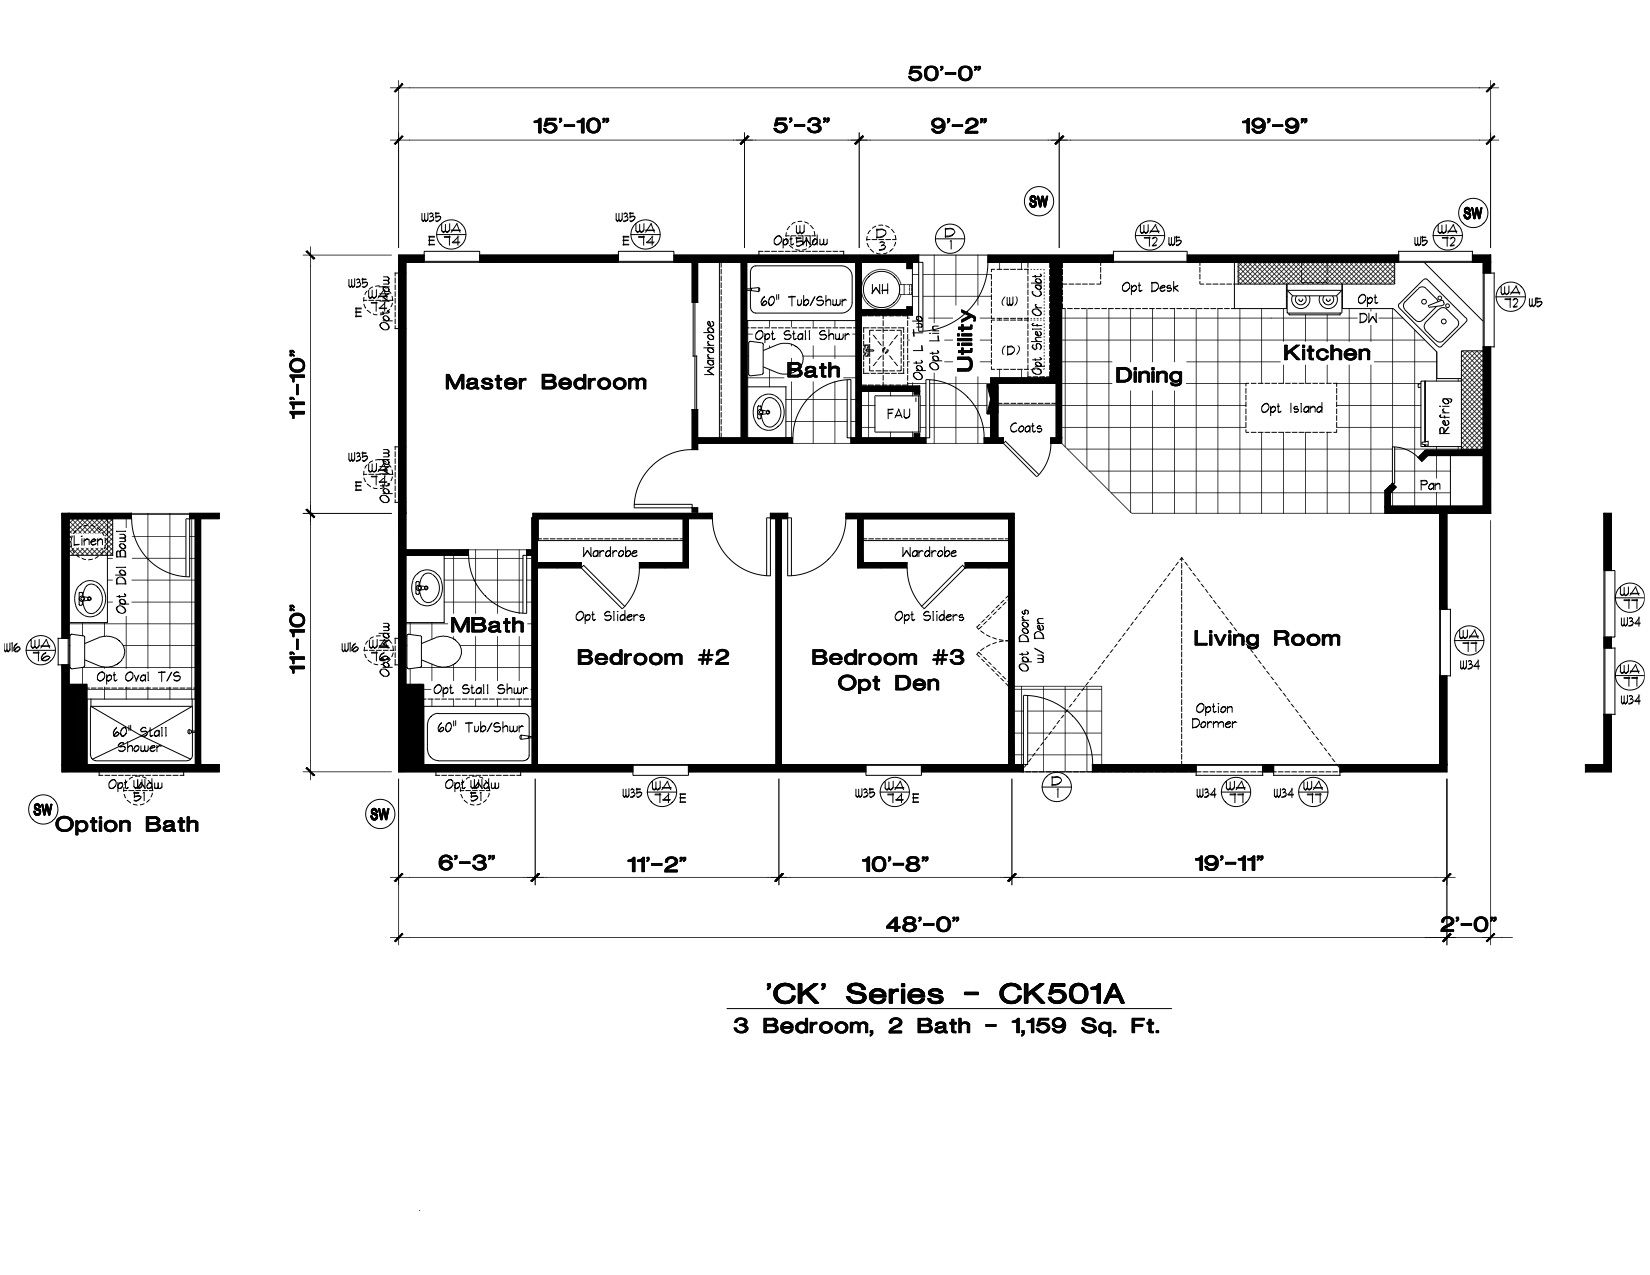 Homes Direct Modular Homes - Model CK501A - Floorplan